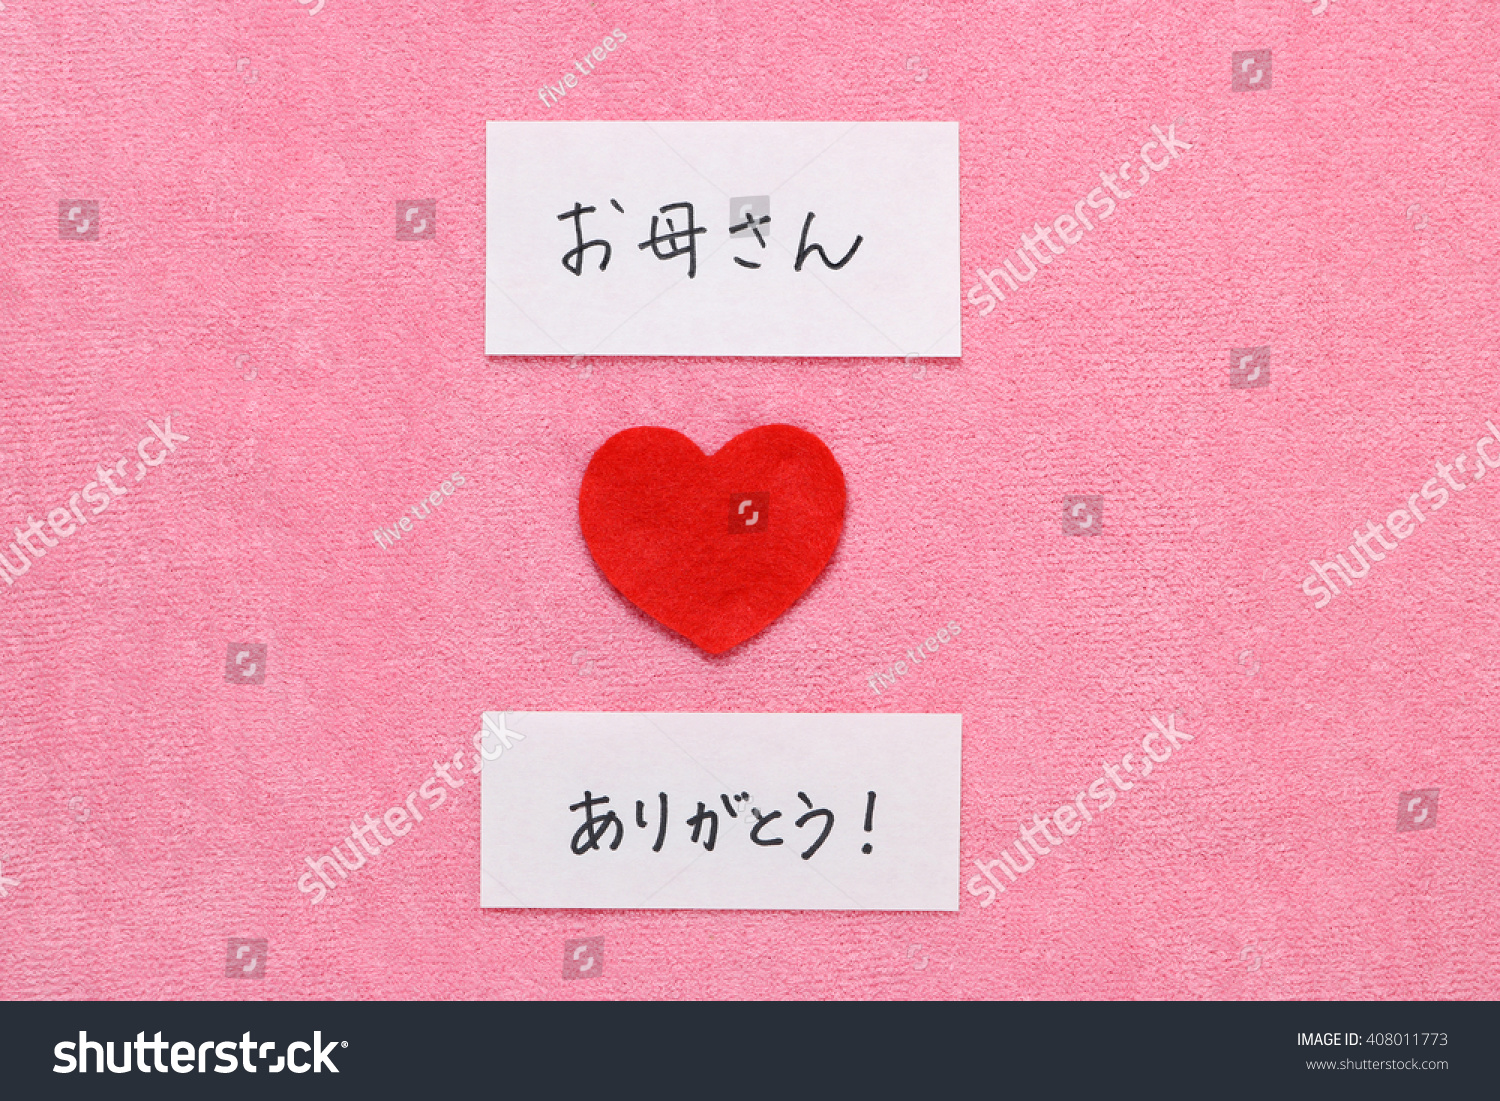 Thank you mom japanese red heart stock photo edit now 408011773 thank you mom in japanese red heart and hand written letters spelling thank you mom expocarfo Image collections